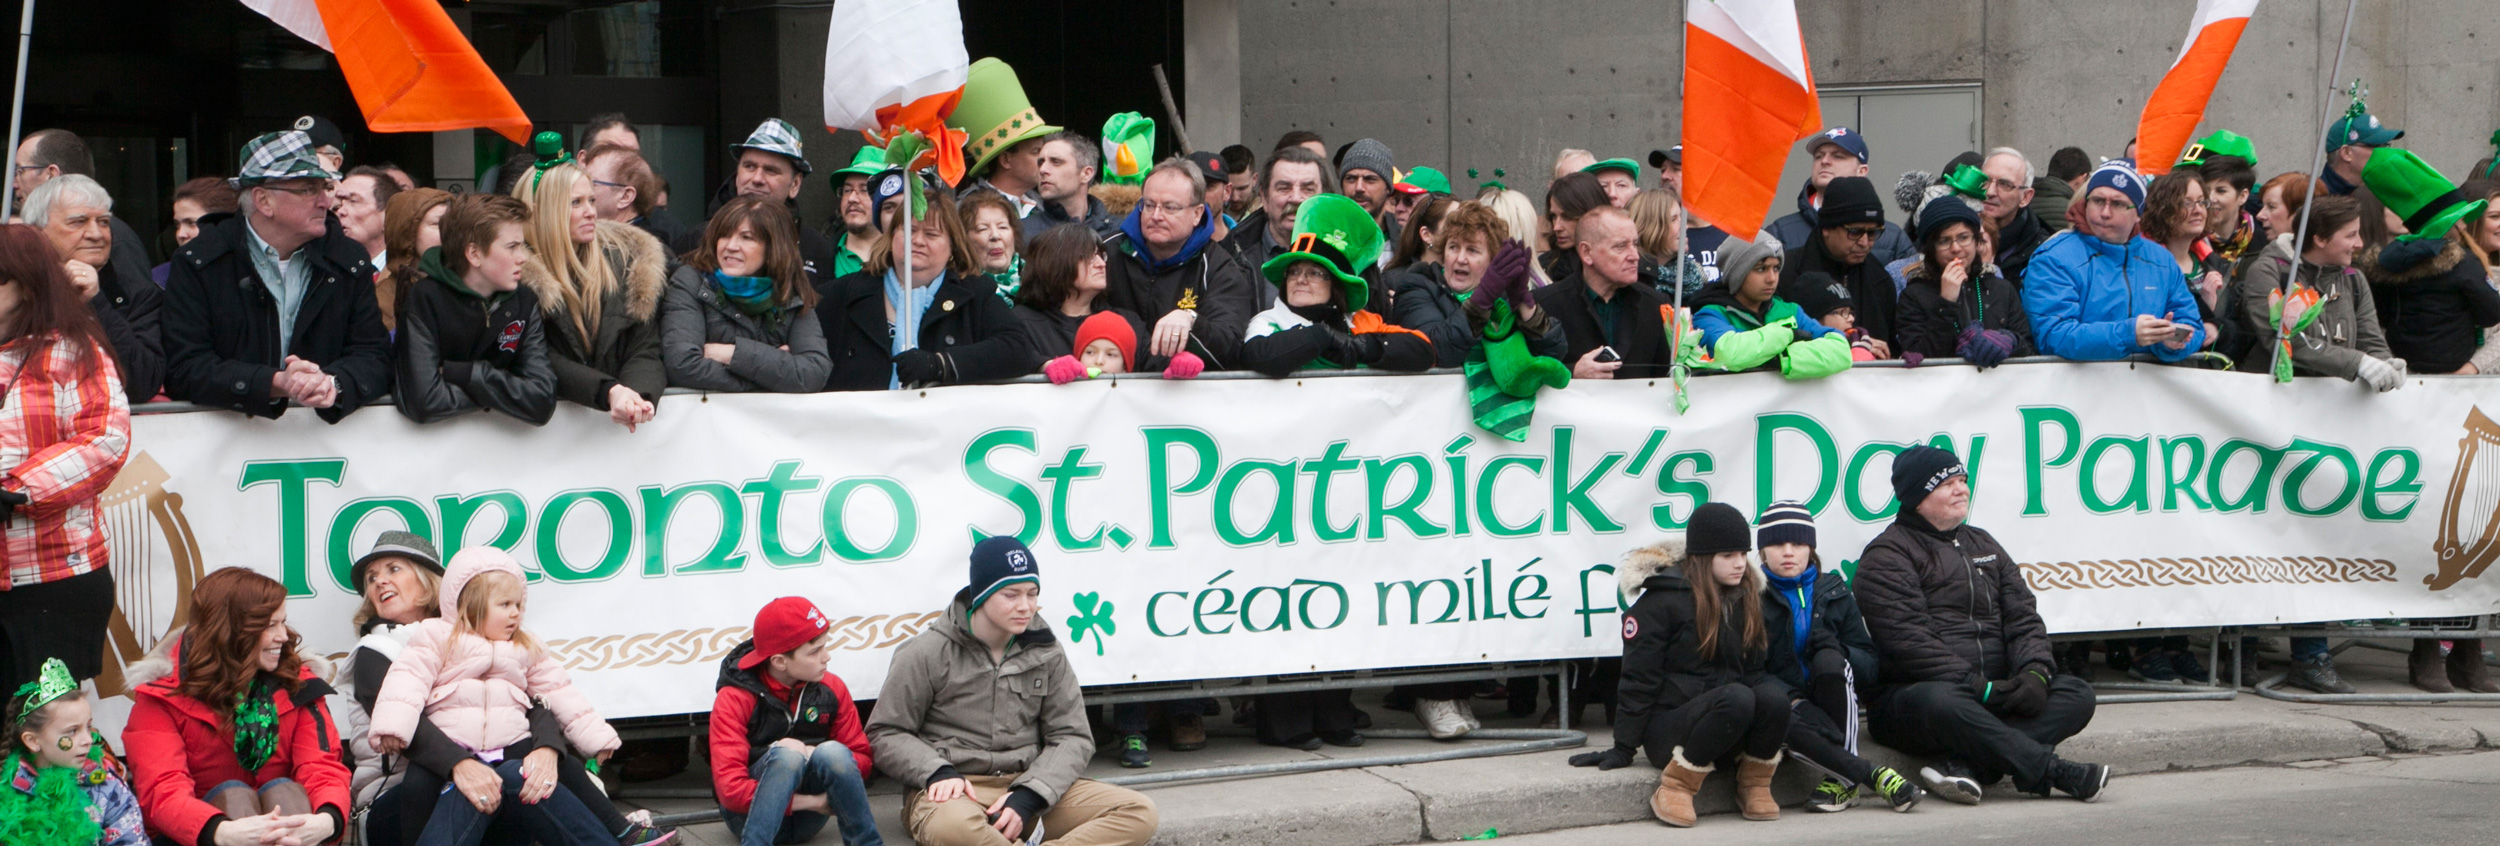 5 East-Side Bars/Pubs to Visit This St. Patrick's Day!